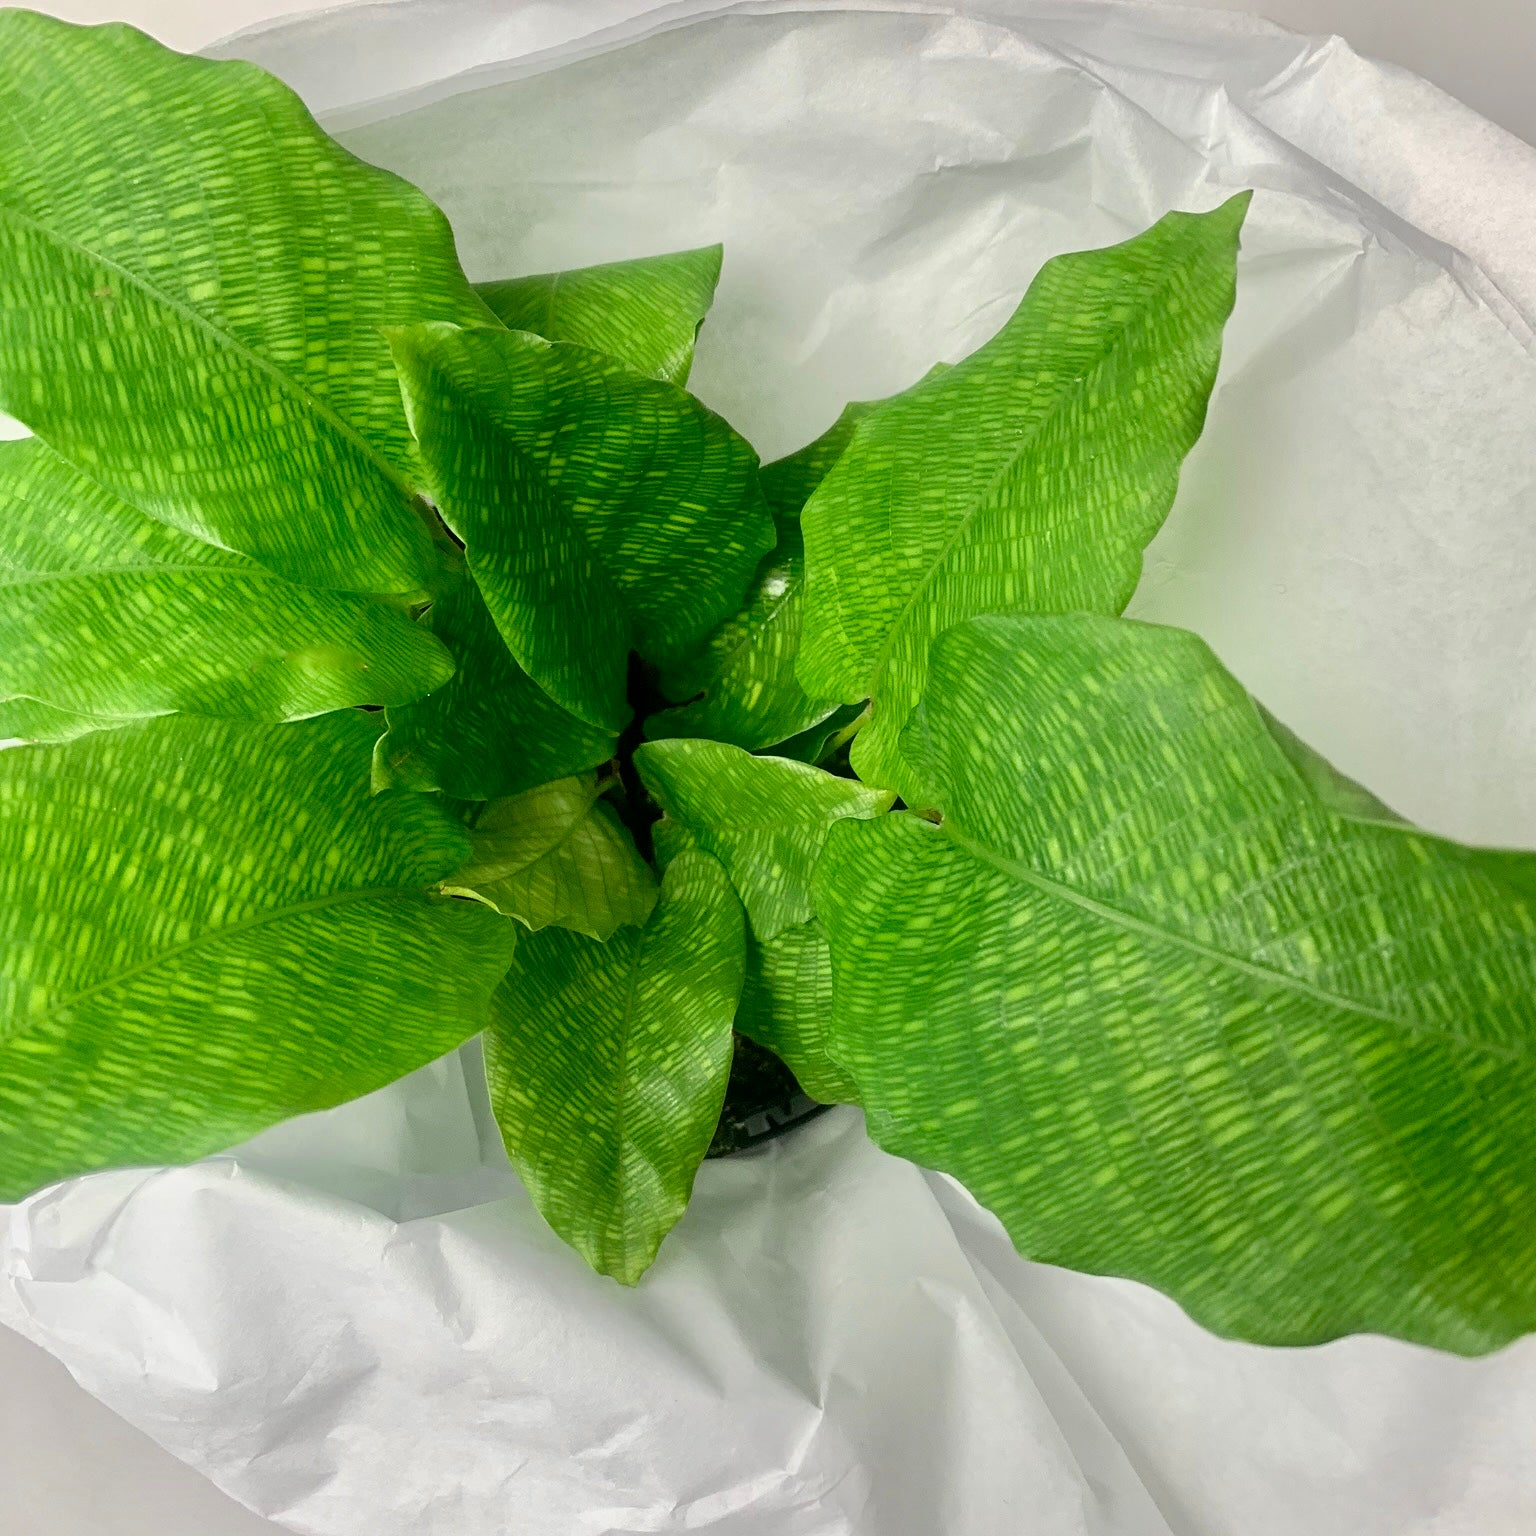 Plant of the Month - Calathea musaica